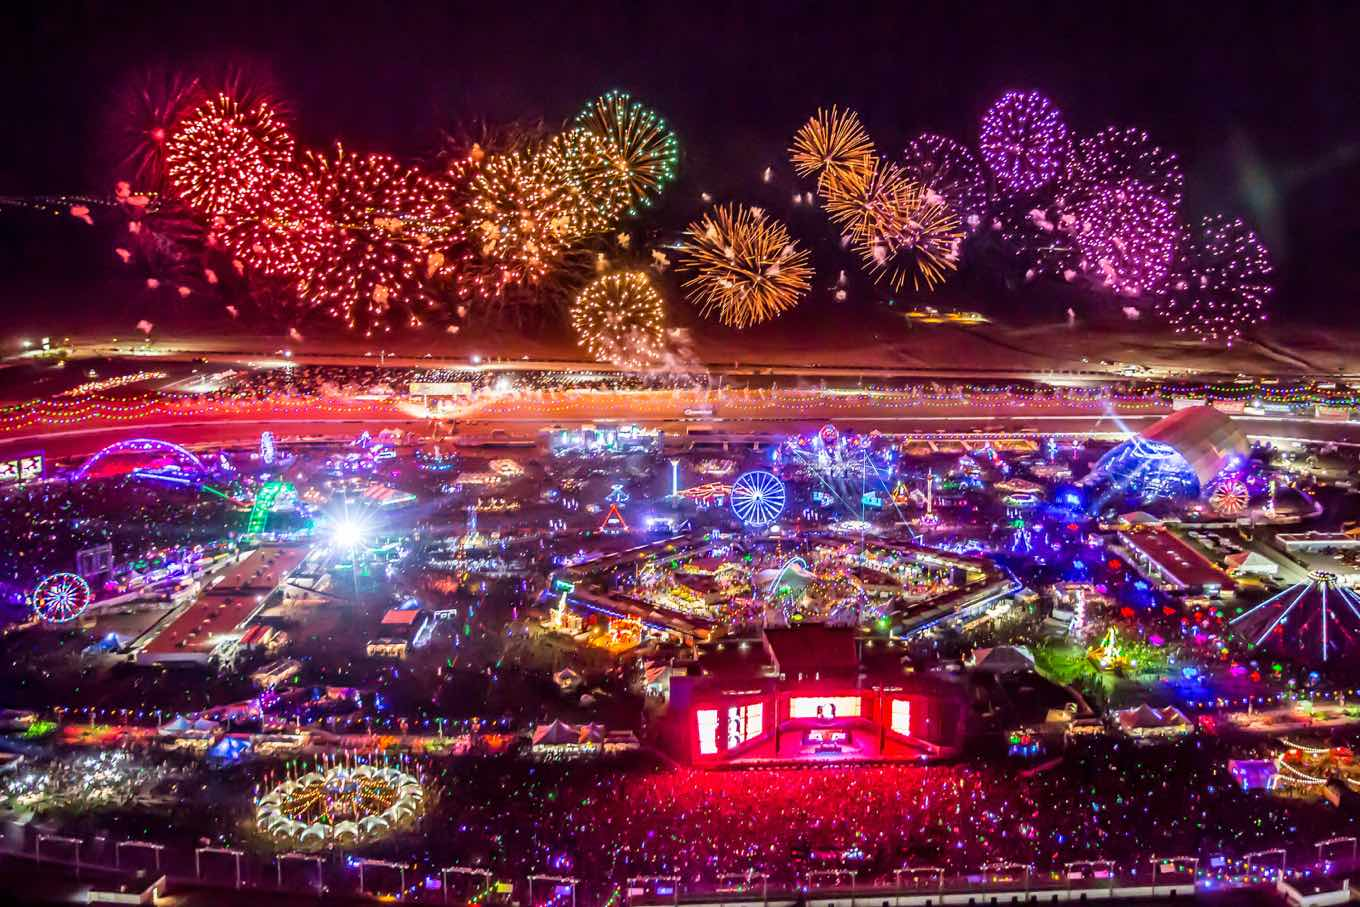 102030e47372 This aerial image shows the lights and fireworks of the biggest music  festival in North America